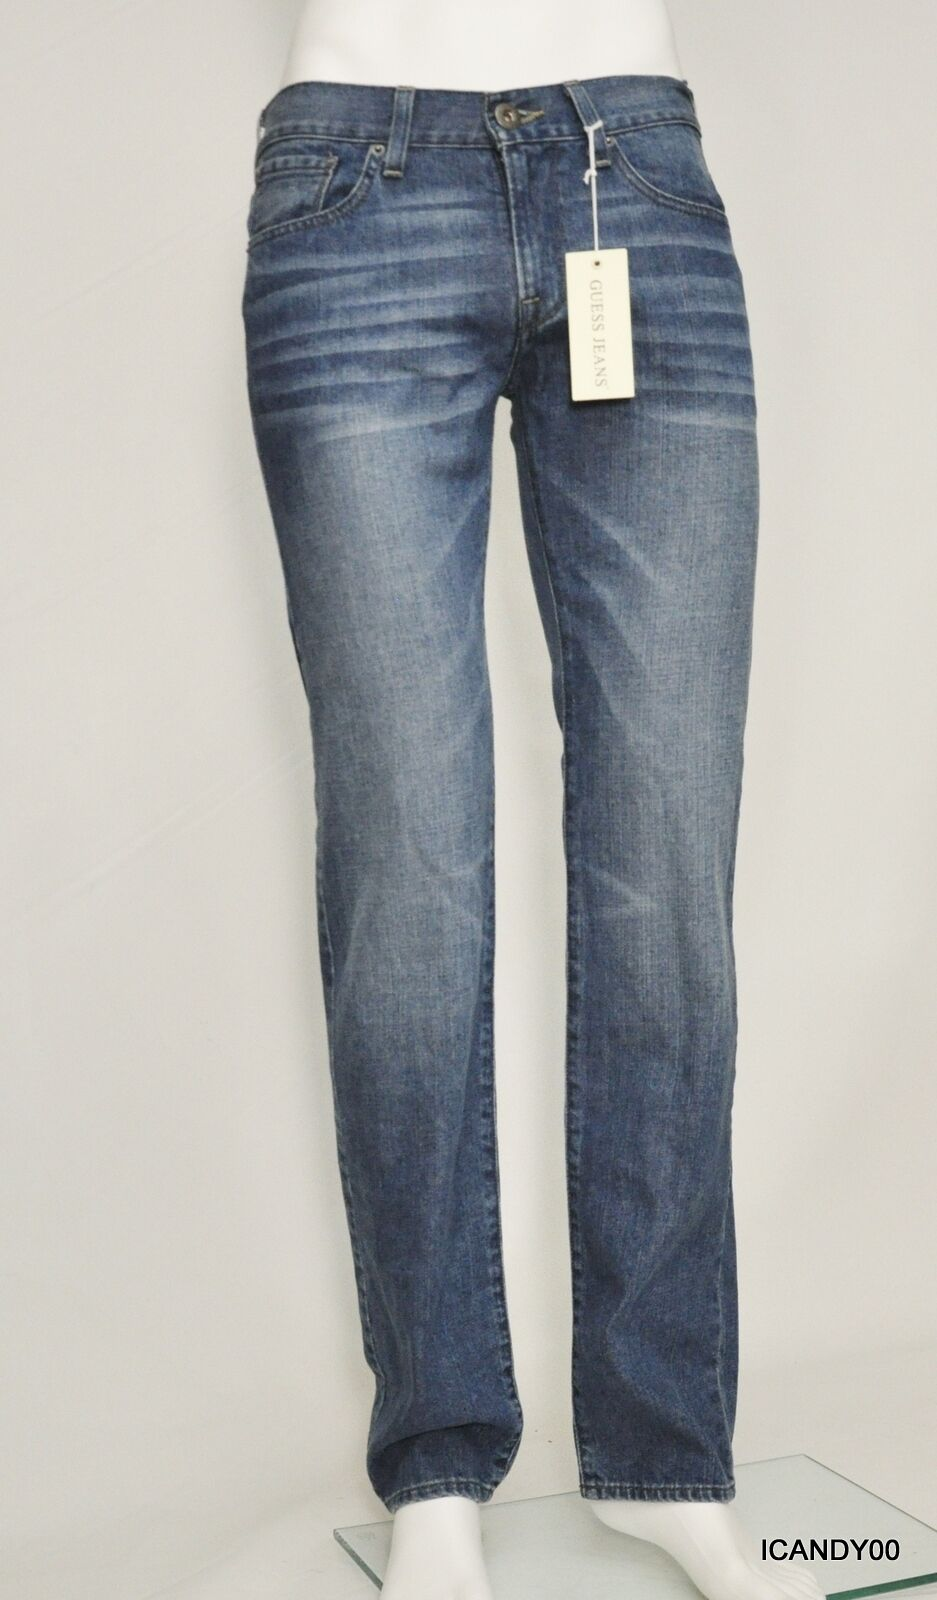 Nwt  Guess LINCOLN Slim Straight Leg Denim Jeans Pants Altitude 2 Wash 30-32